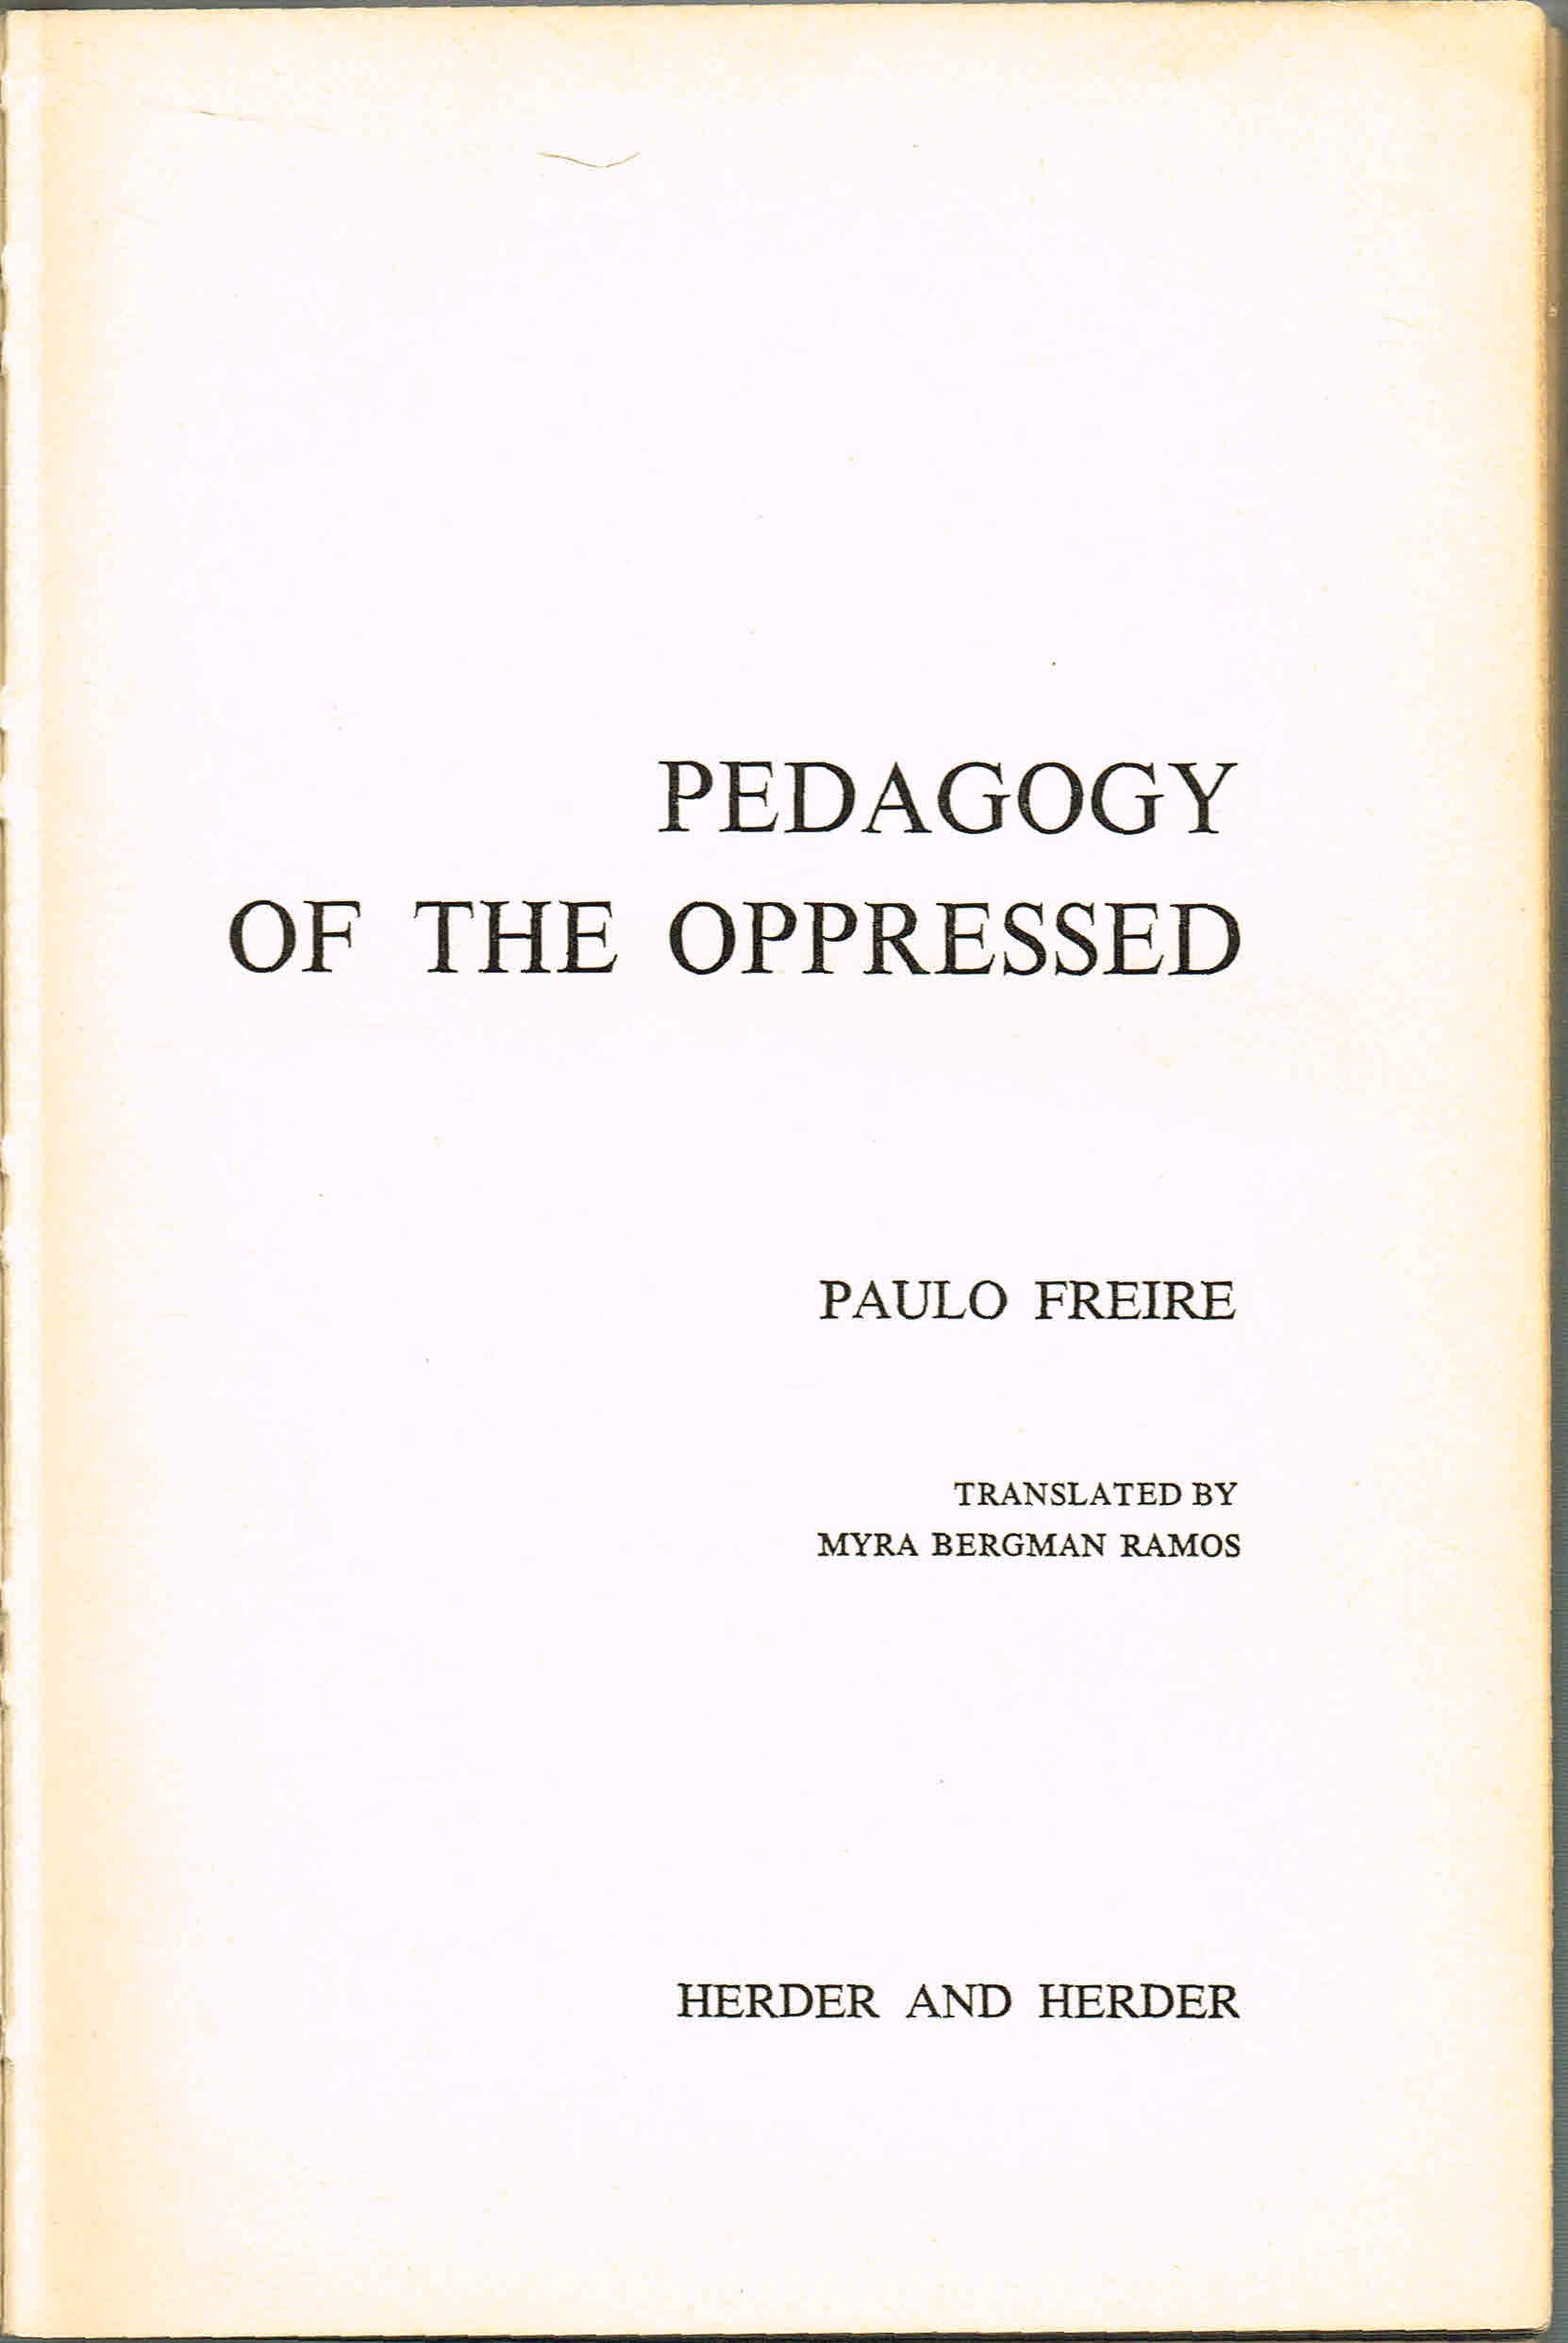 essay on pedagogy of the oppressed by paulo freire 91 121 113 106 essay on pedagogy of the oppressed by paulo freire